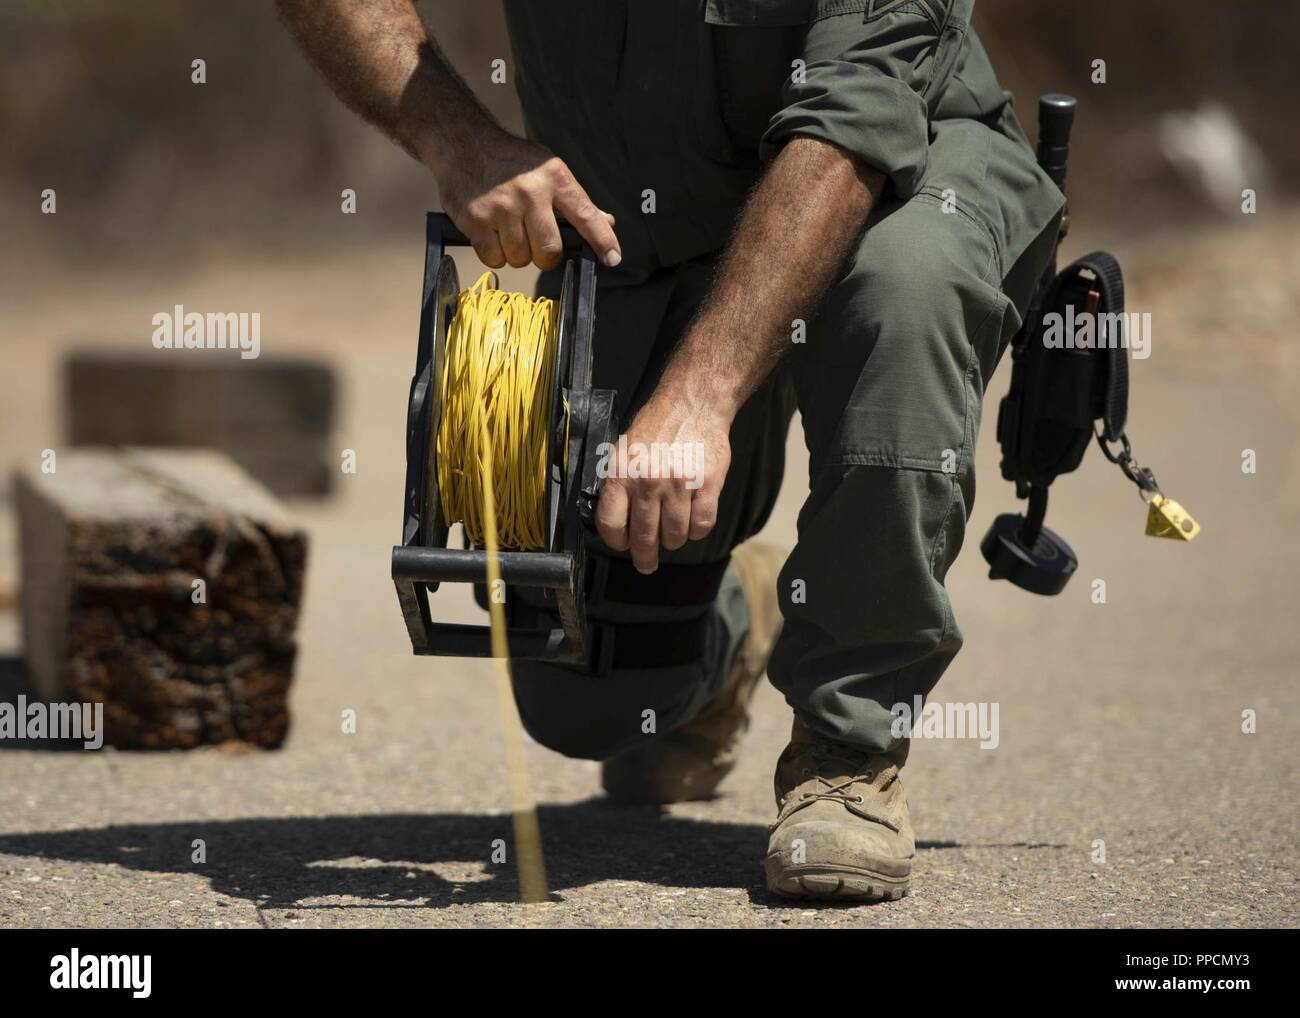 A bomb technician reels in a fuse used to ignite explosions